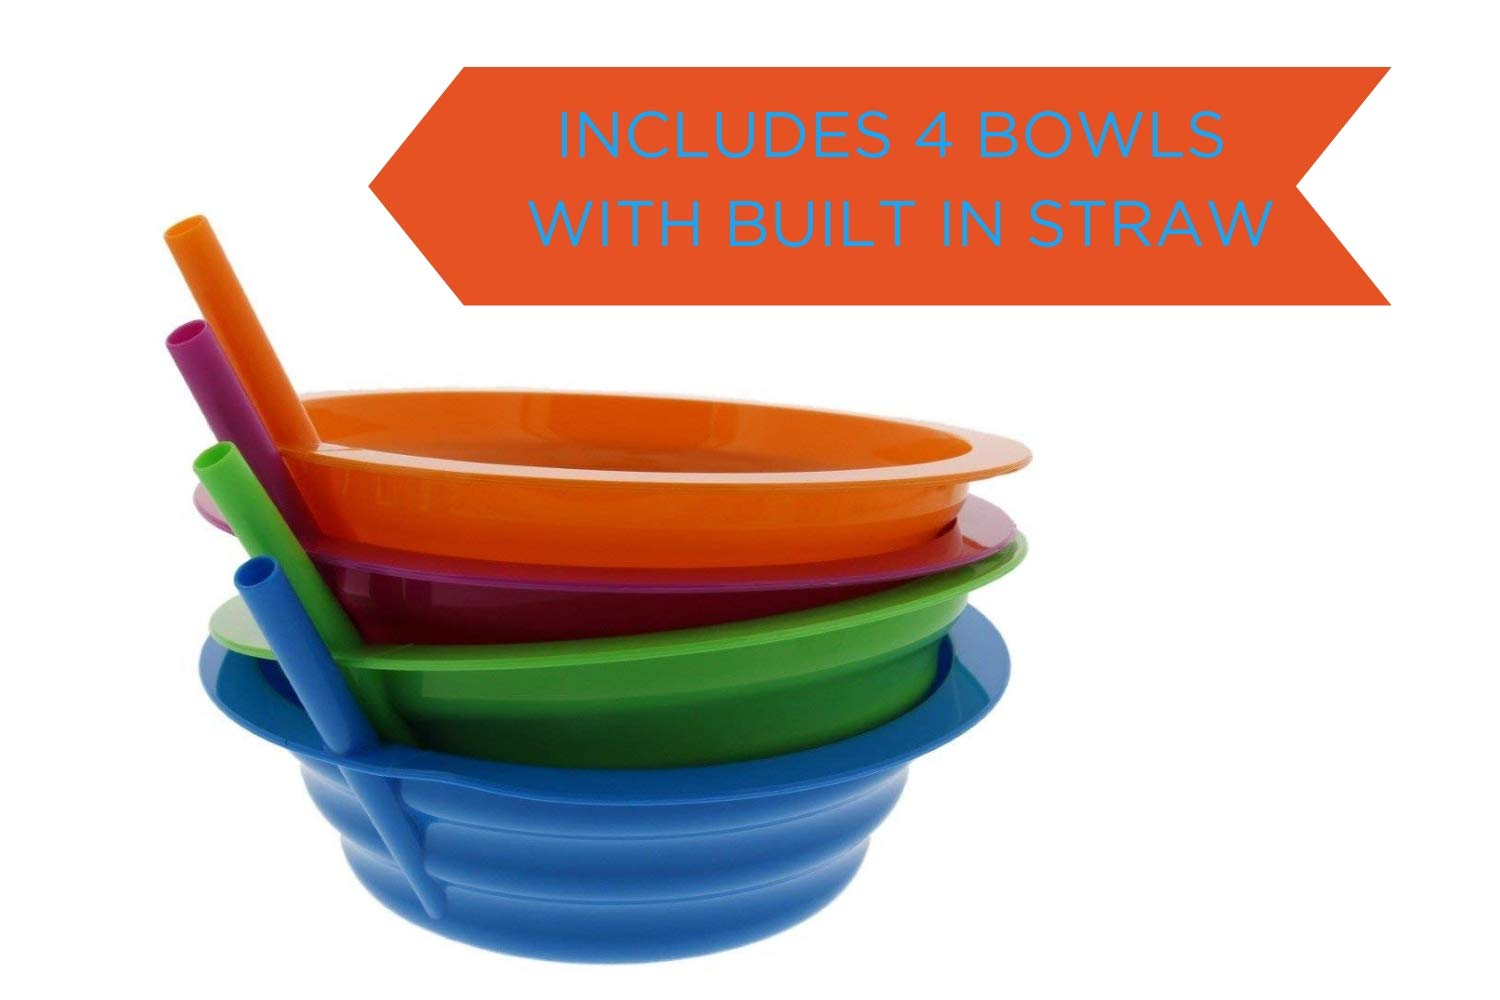 Arrow Sip-A-Bowl With Built In Straw, 22 oz, Blue, Purple,Green, Orange (4 Pack) by Arrow Home Products (Image #2)